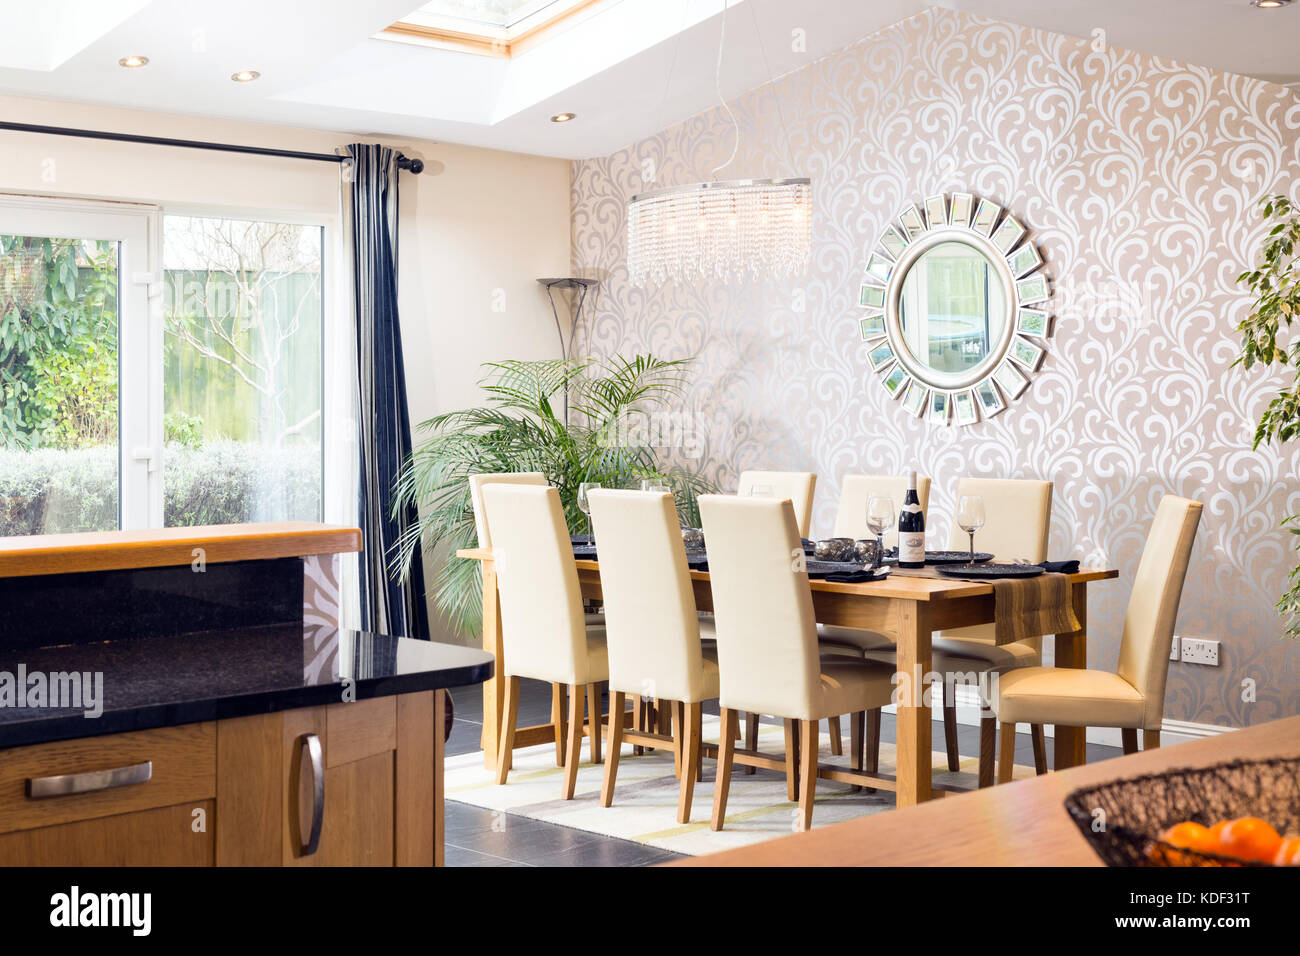 The dining area, showing a table & chairs in a single story rear extension. Viewed from the home's kitchen. - Stock Image